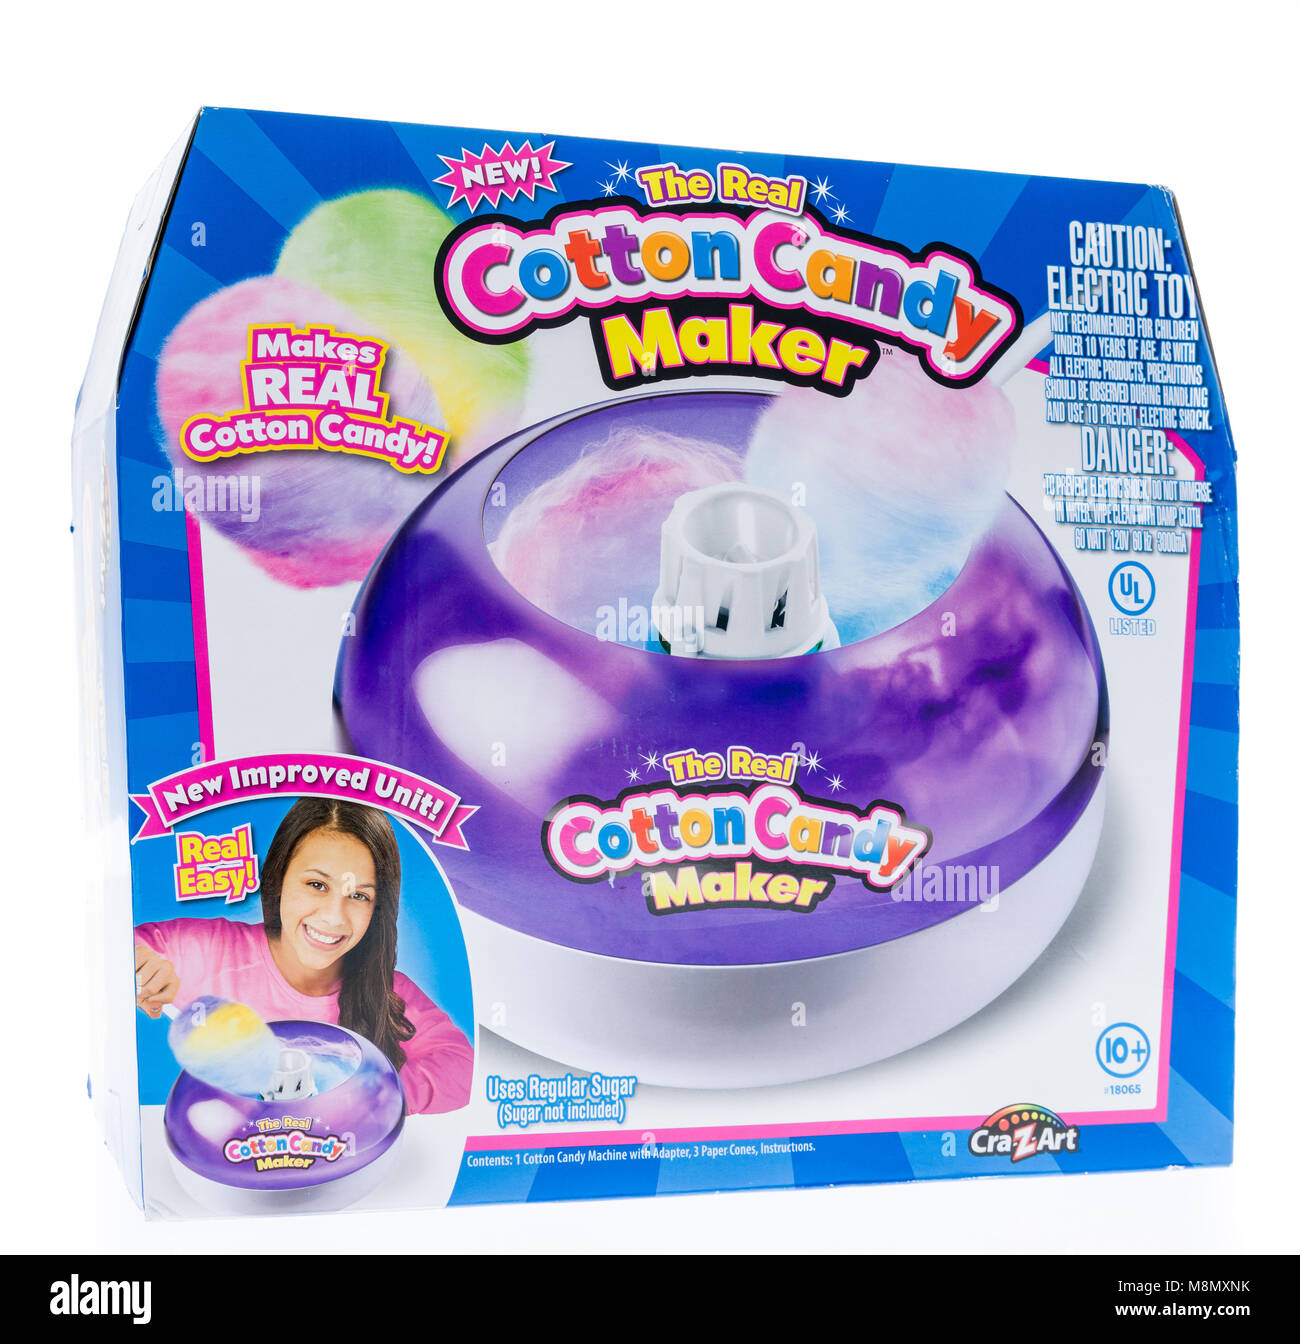 cra z art cotton candy maker instructions